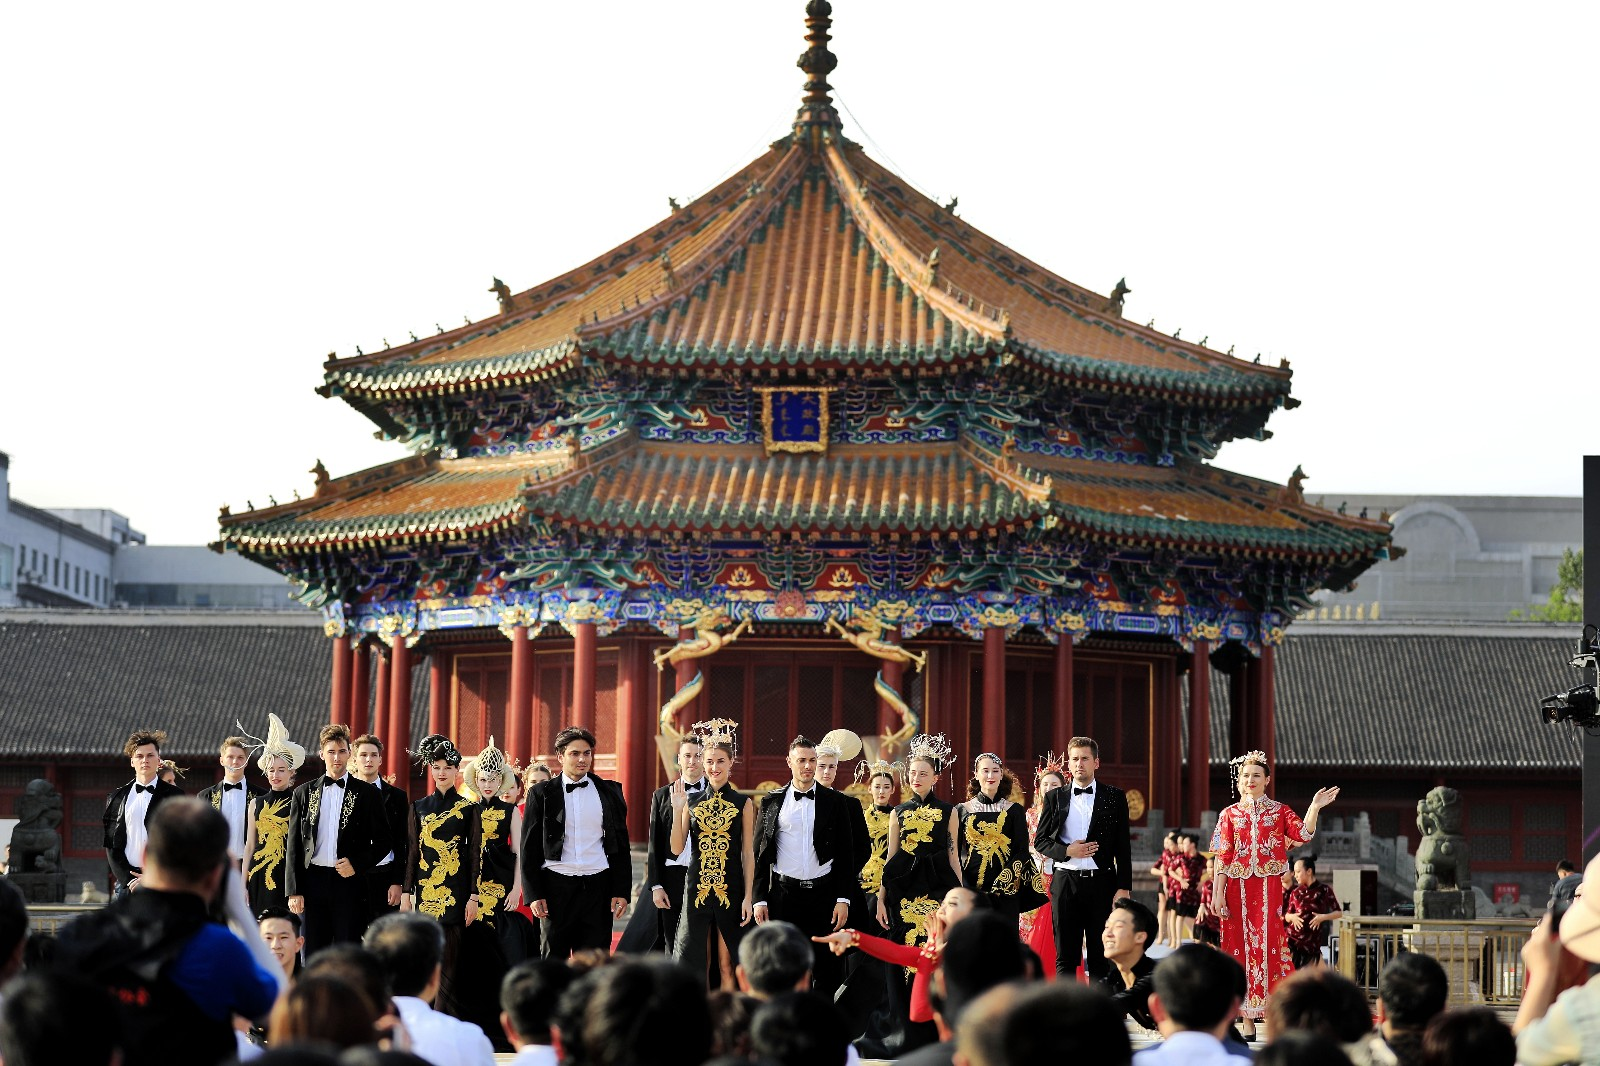 Shenyang International Cheongsam Culture Festival opens